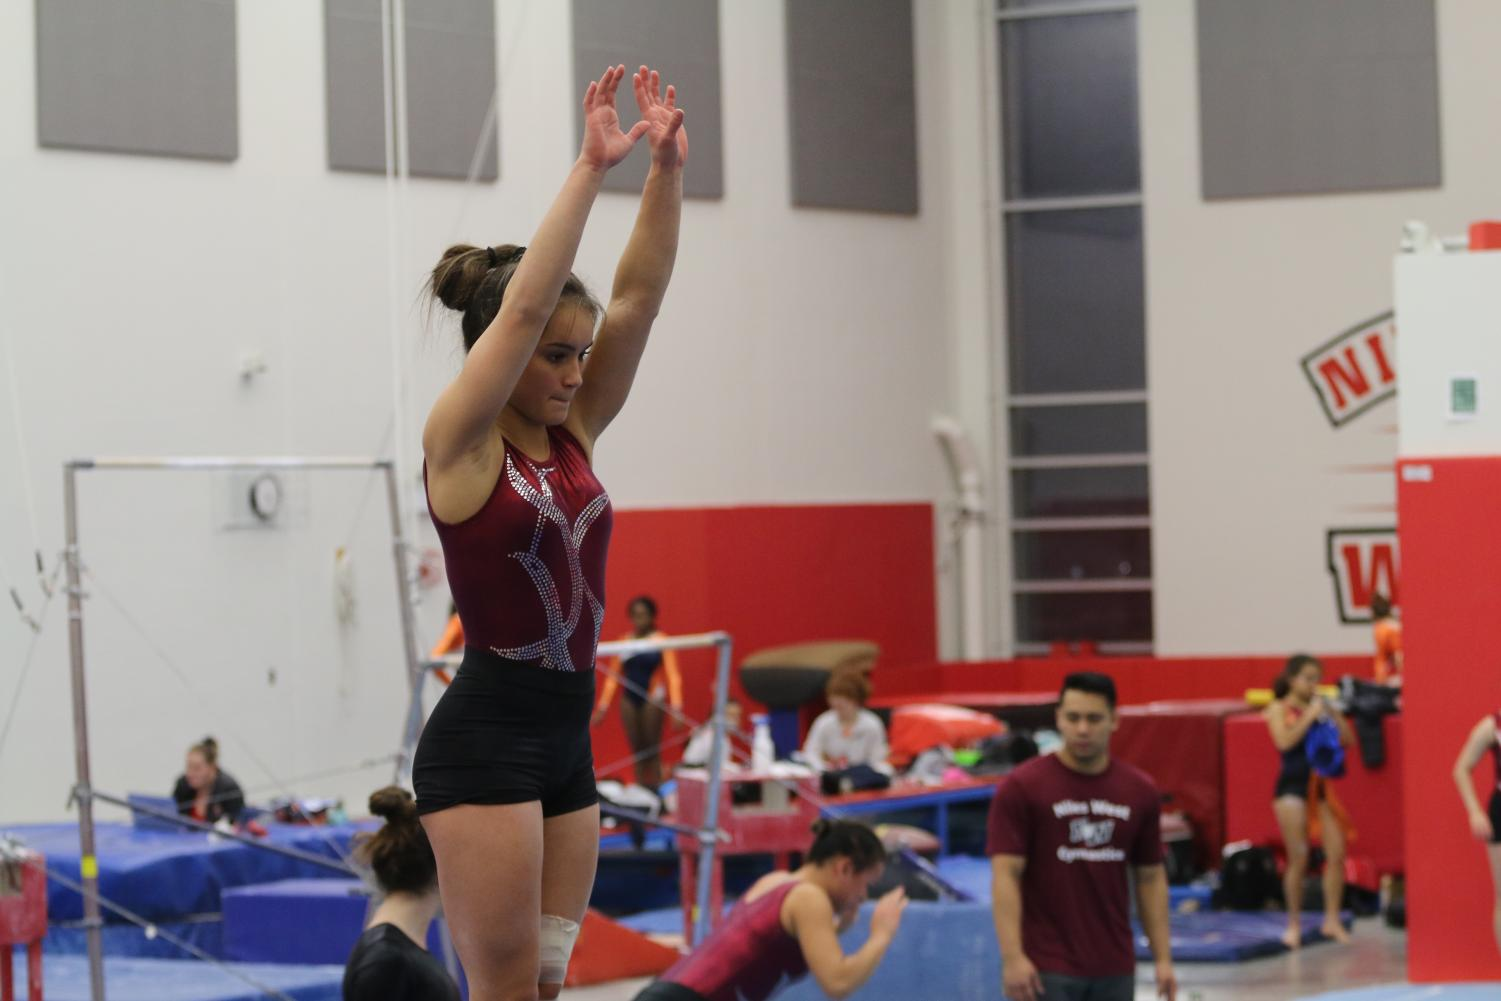 Junior Jasmine Dirks gets ready to perform her routine on the beam.